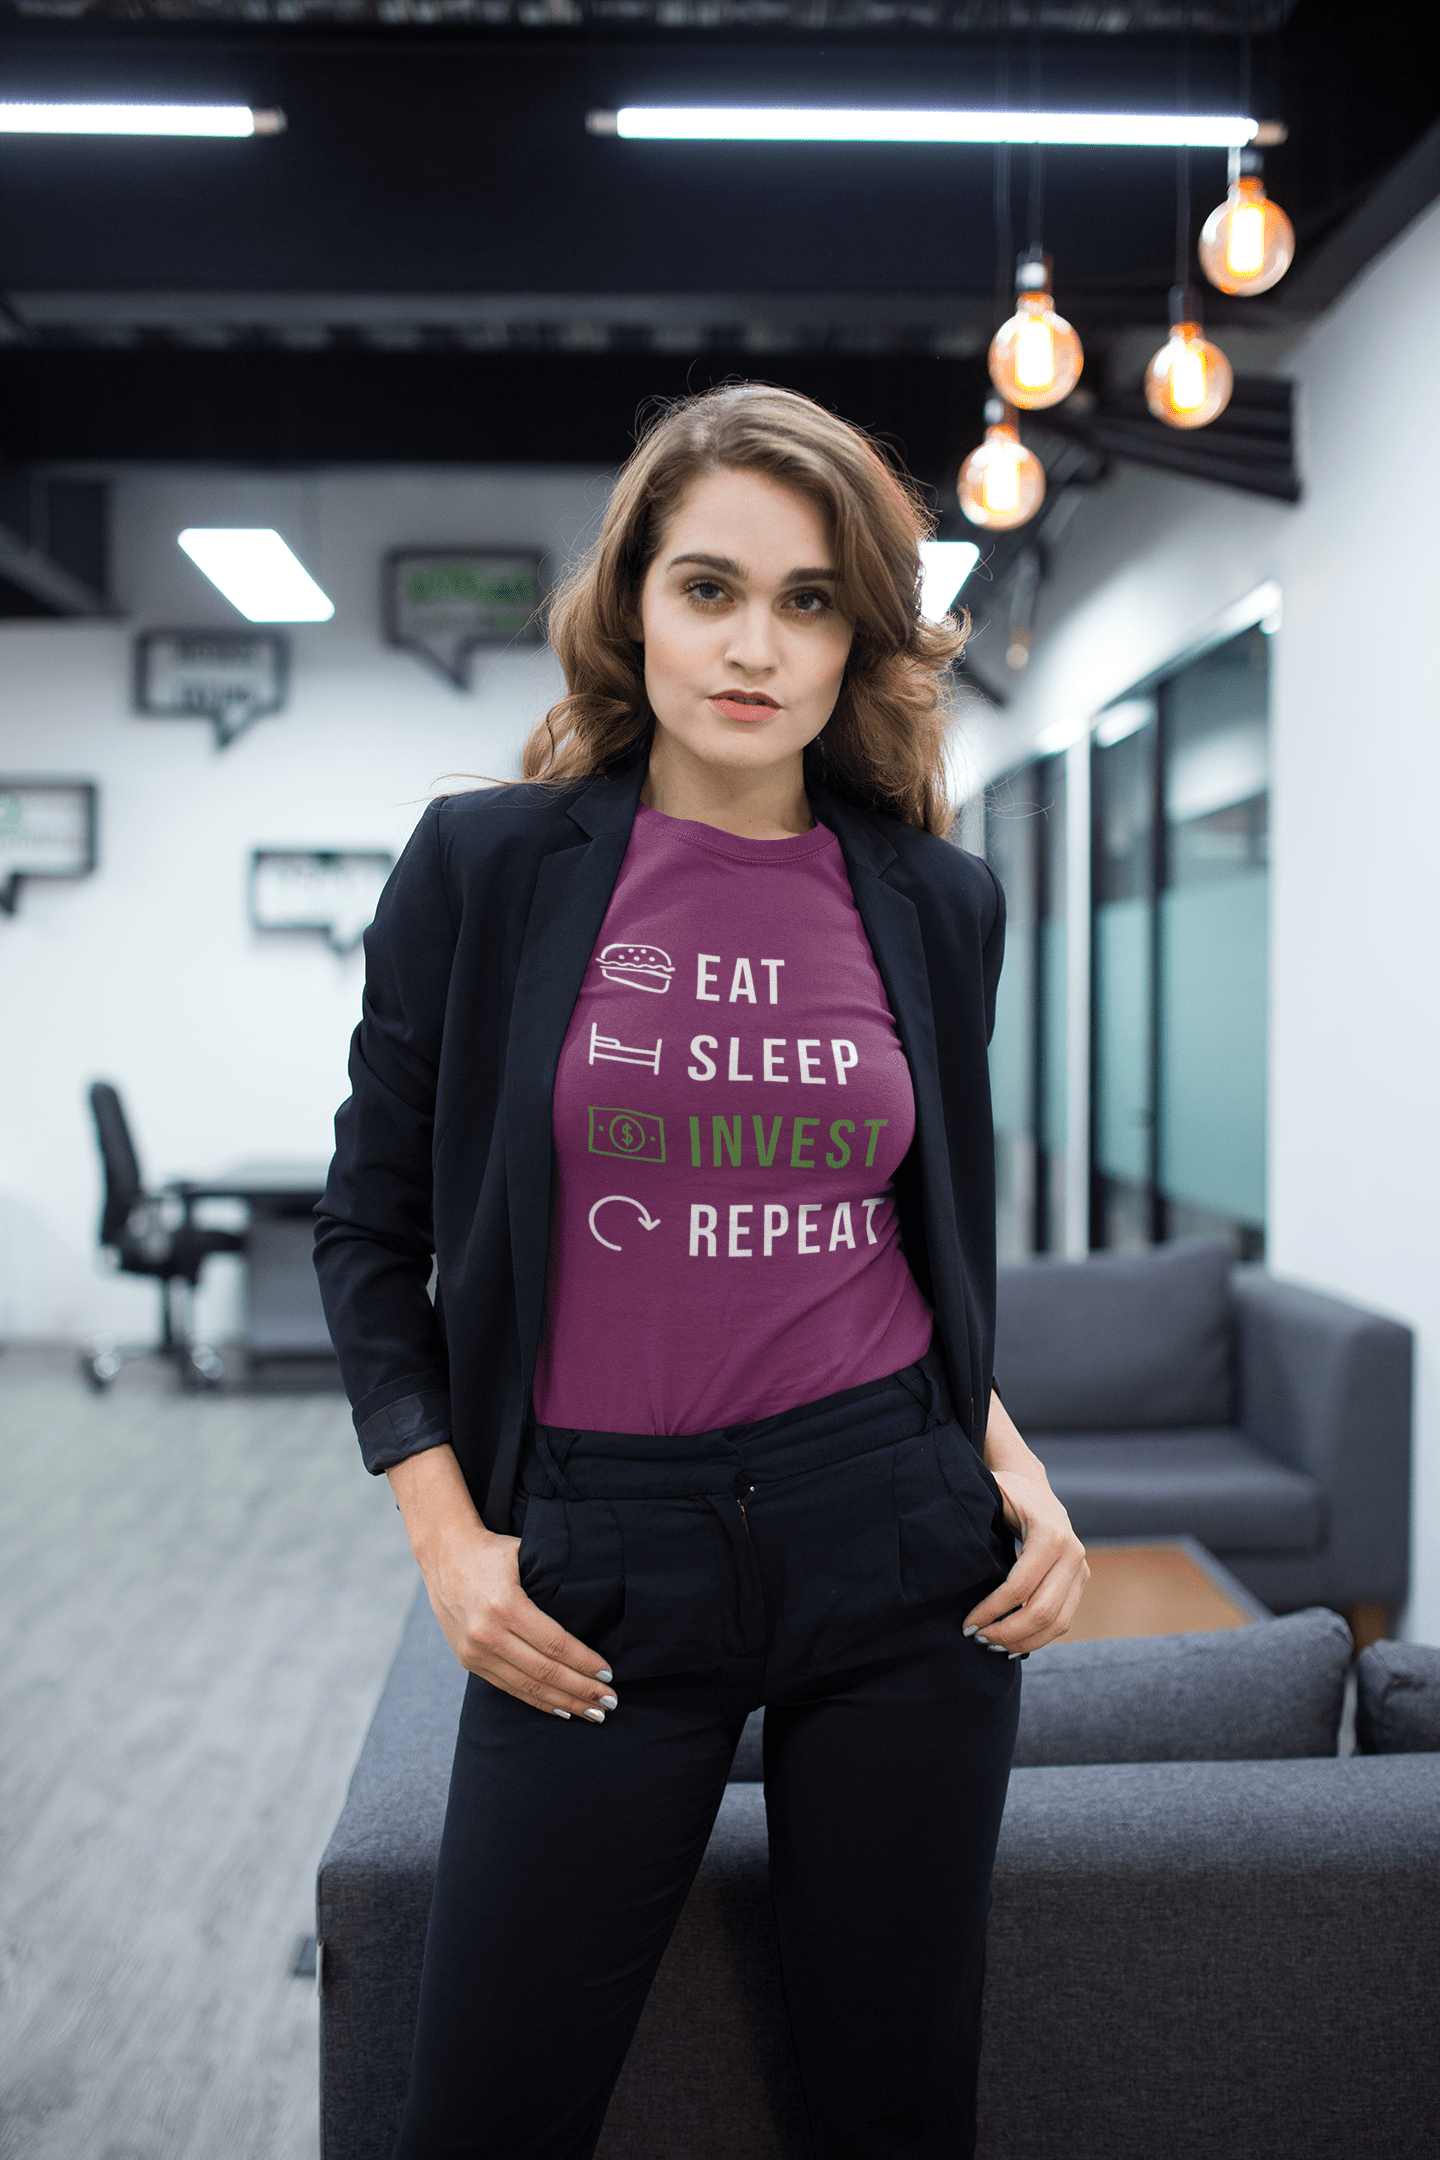 Eat Sleep Invest And Repeat Cotton T-shirt Trendy Zebra